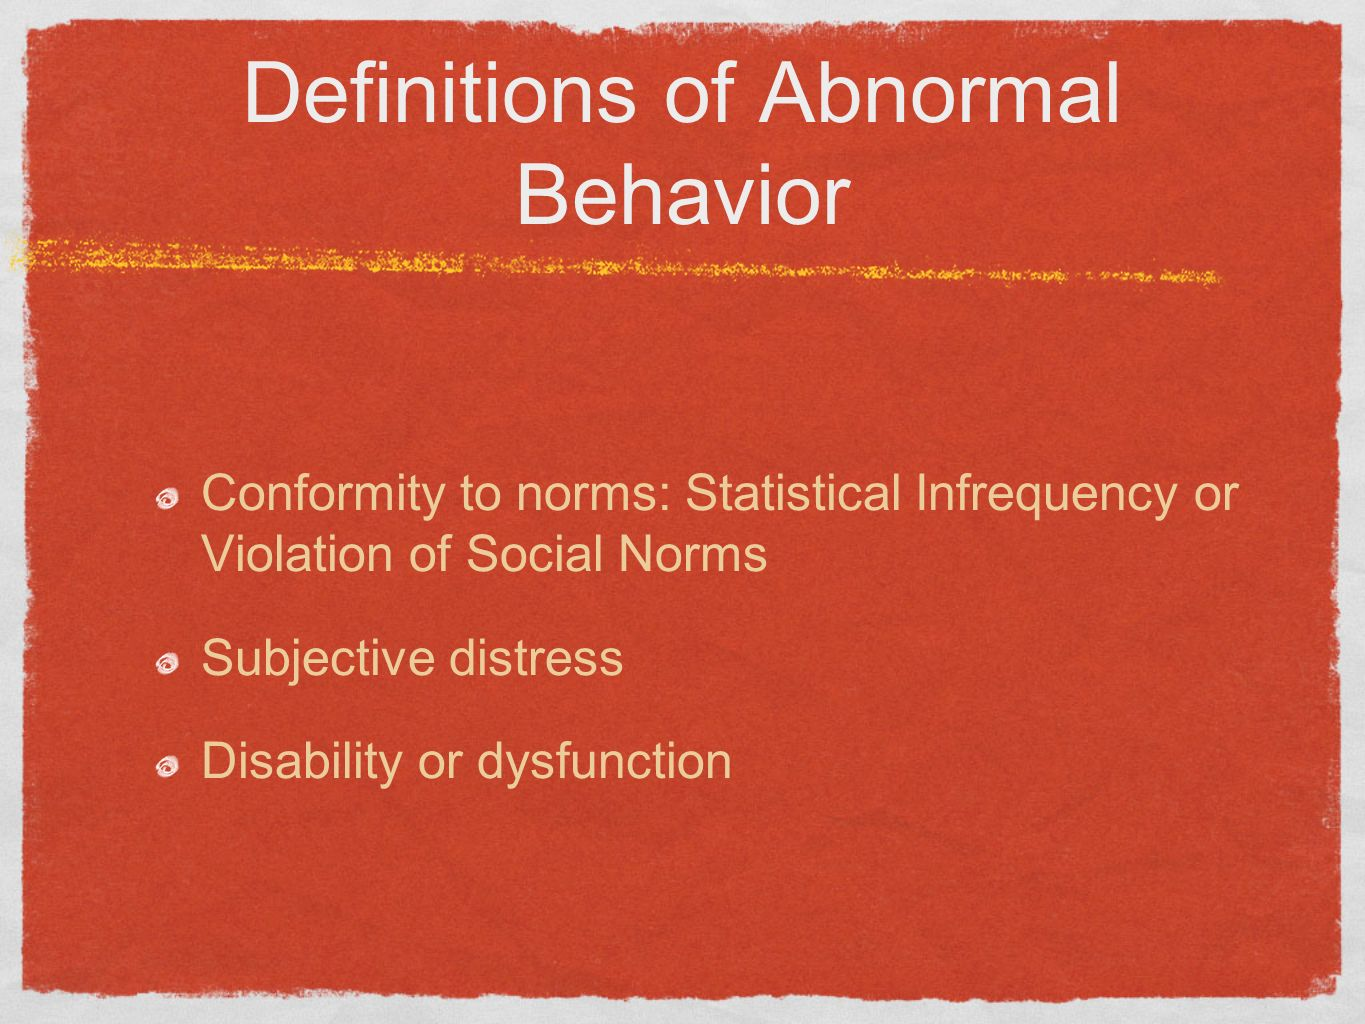 Definitions of Abnormal Behavior Conformity to norms: Statistical Infrequency or Violation of Social Norms Subjective distress Disability or dysfuncti